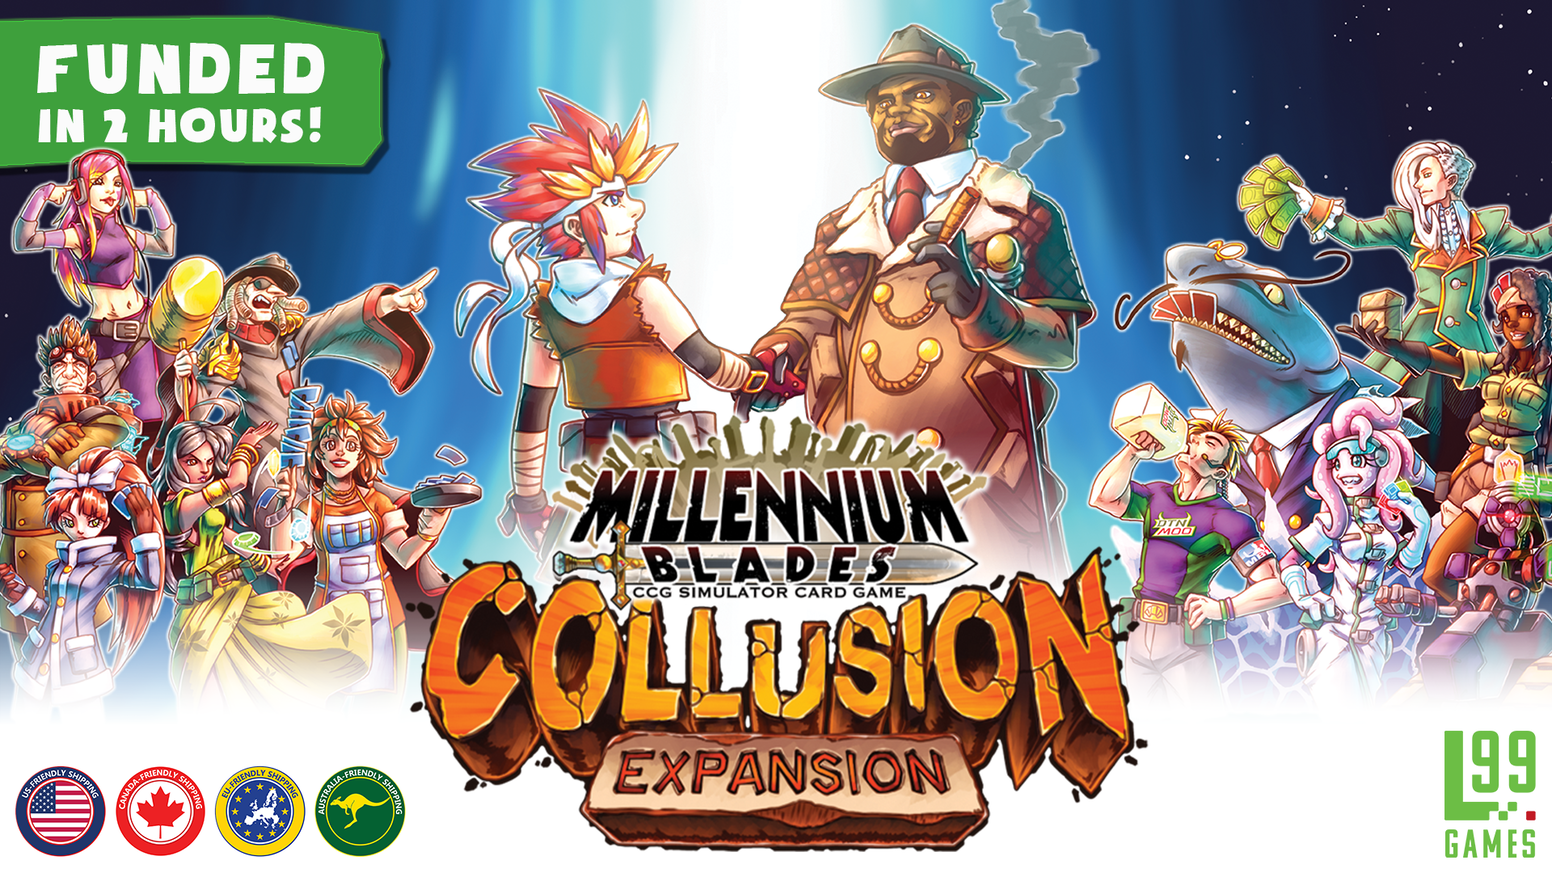 A final expansion + storage solution to wrap up the Millennium Blades Epic! Over 400 new cards, 6 characters, team mode, & more!